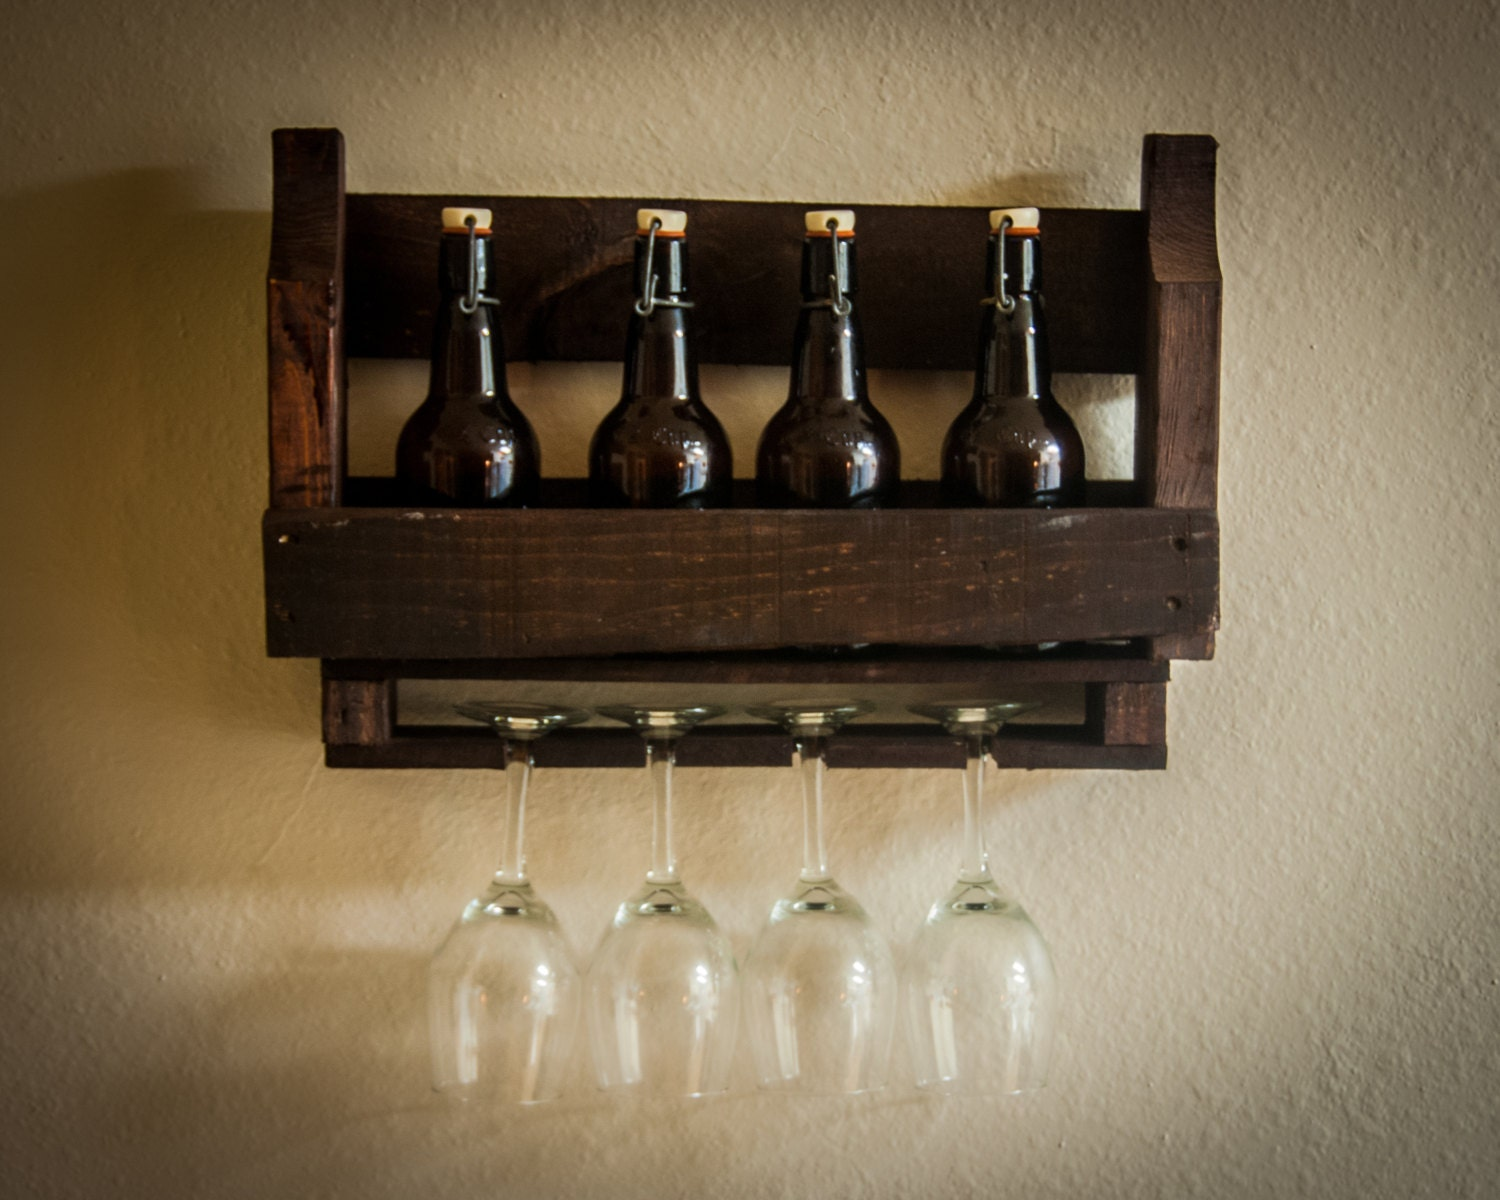 Wine rack wine glass holder wine rack mounted wine rack wood Wine racks for small spaces pict